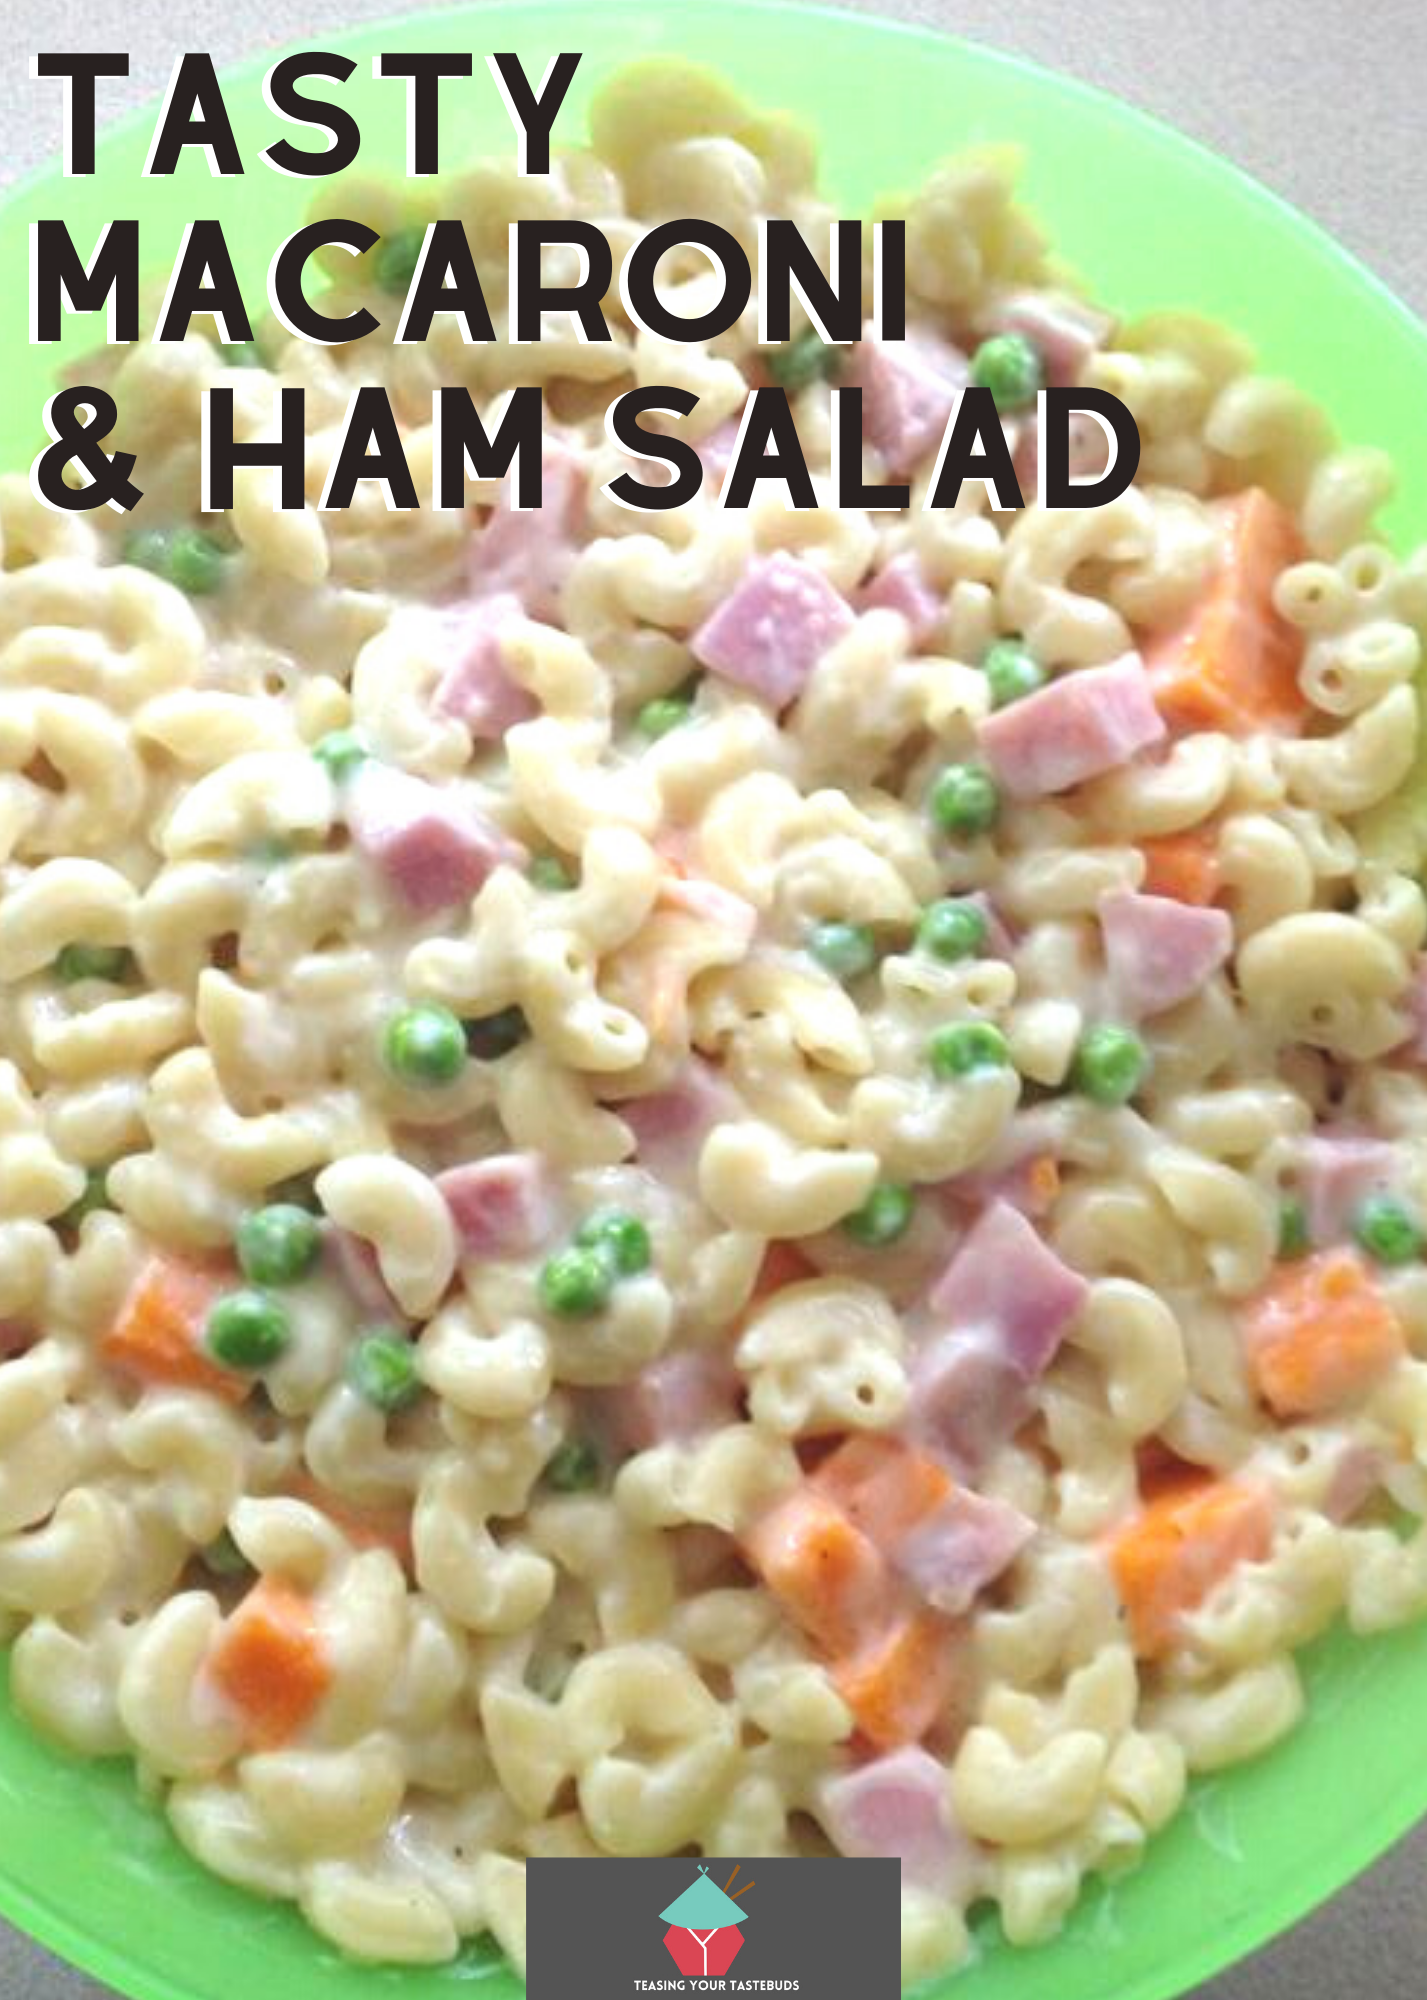 Tasty Macaroni Ham Salad. A simple and delicious recipe for macaroni ham salad, quick and easy to make, ideal as a side dish with a BBQ or main meal. Creamy, full of flavor and easily transportable for picnics too!